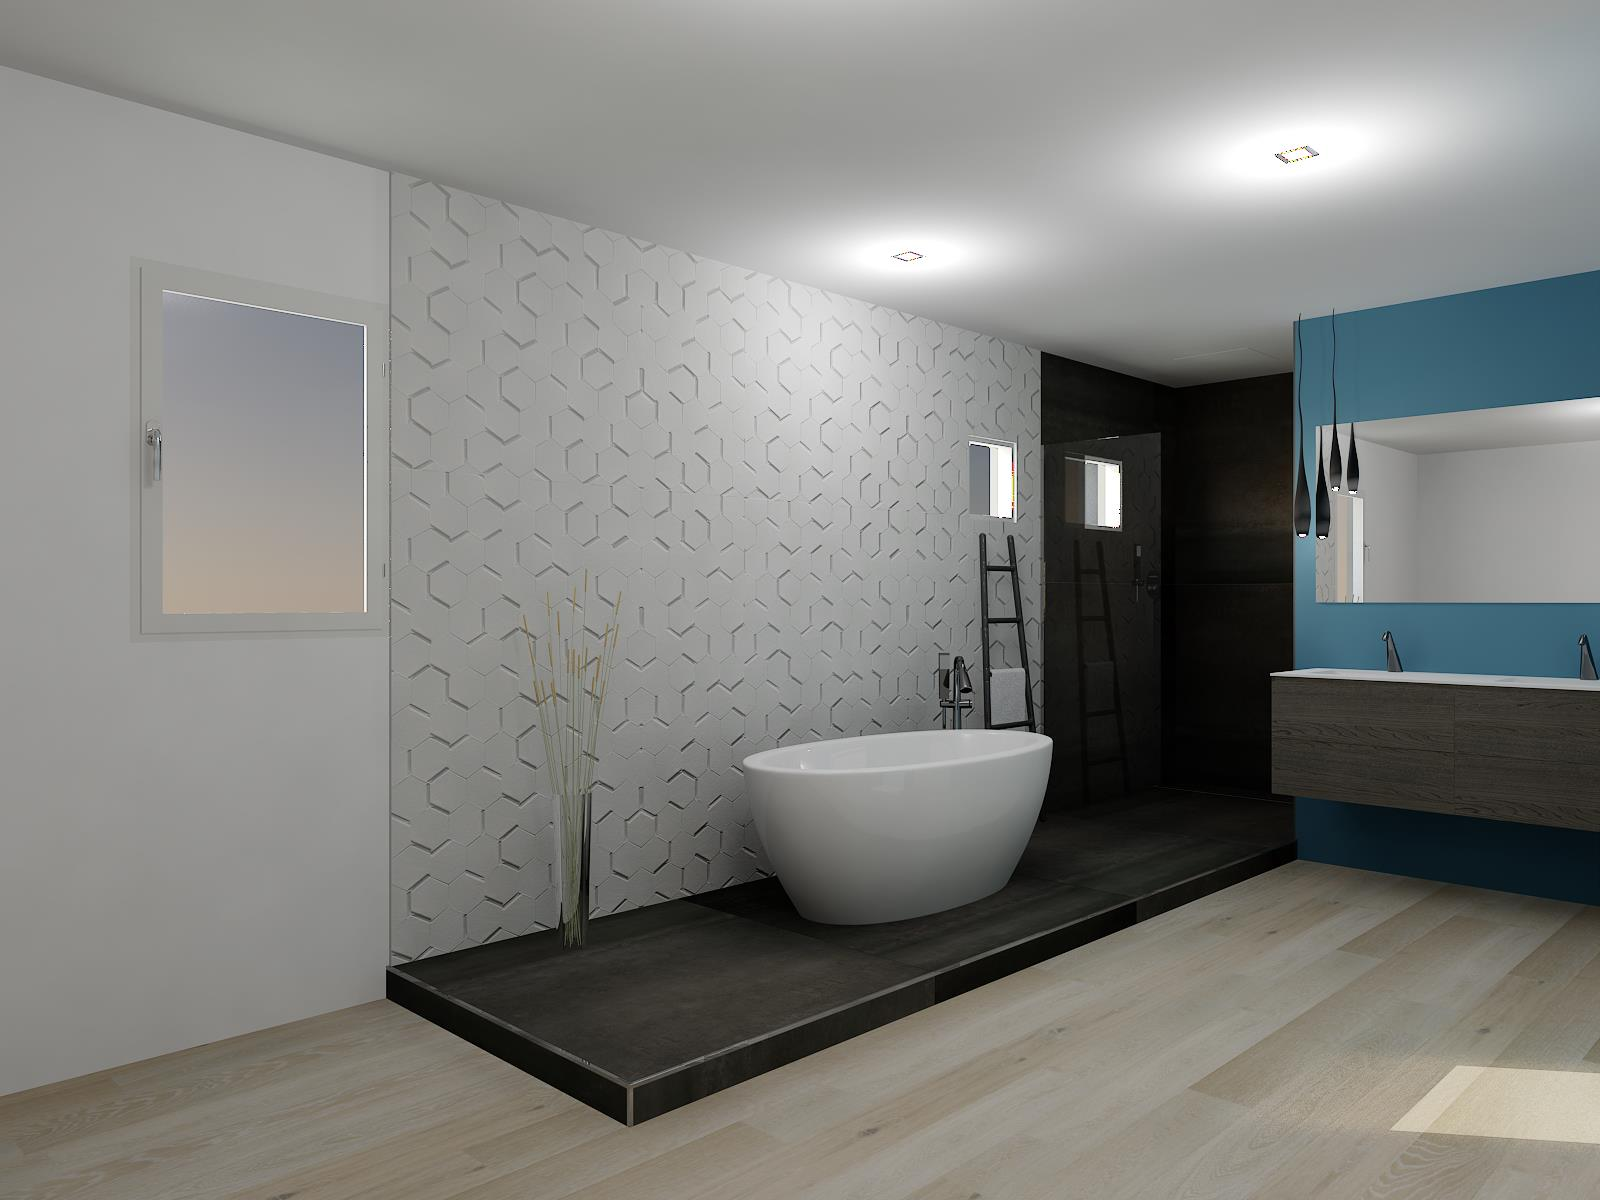 Mattout carrelage dem11392 1 bathroom by mattout carrelage for Mattout carrelage aubagne